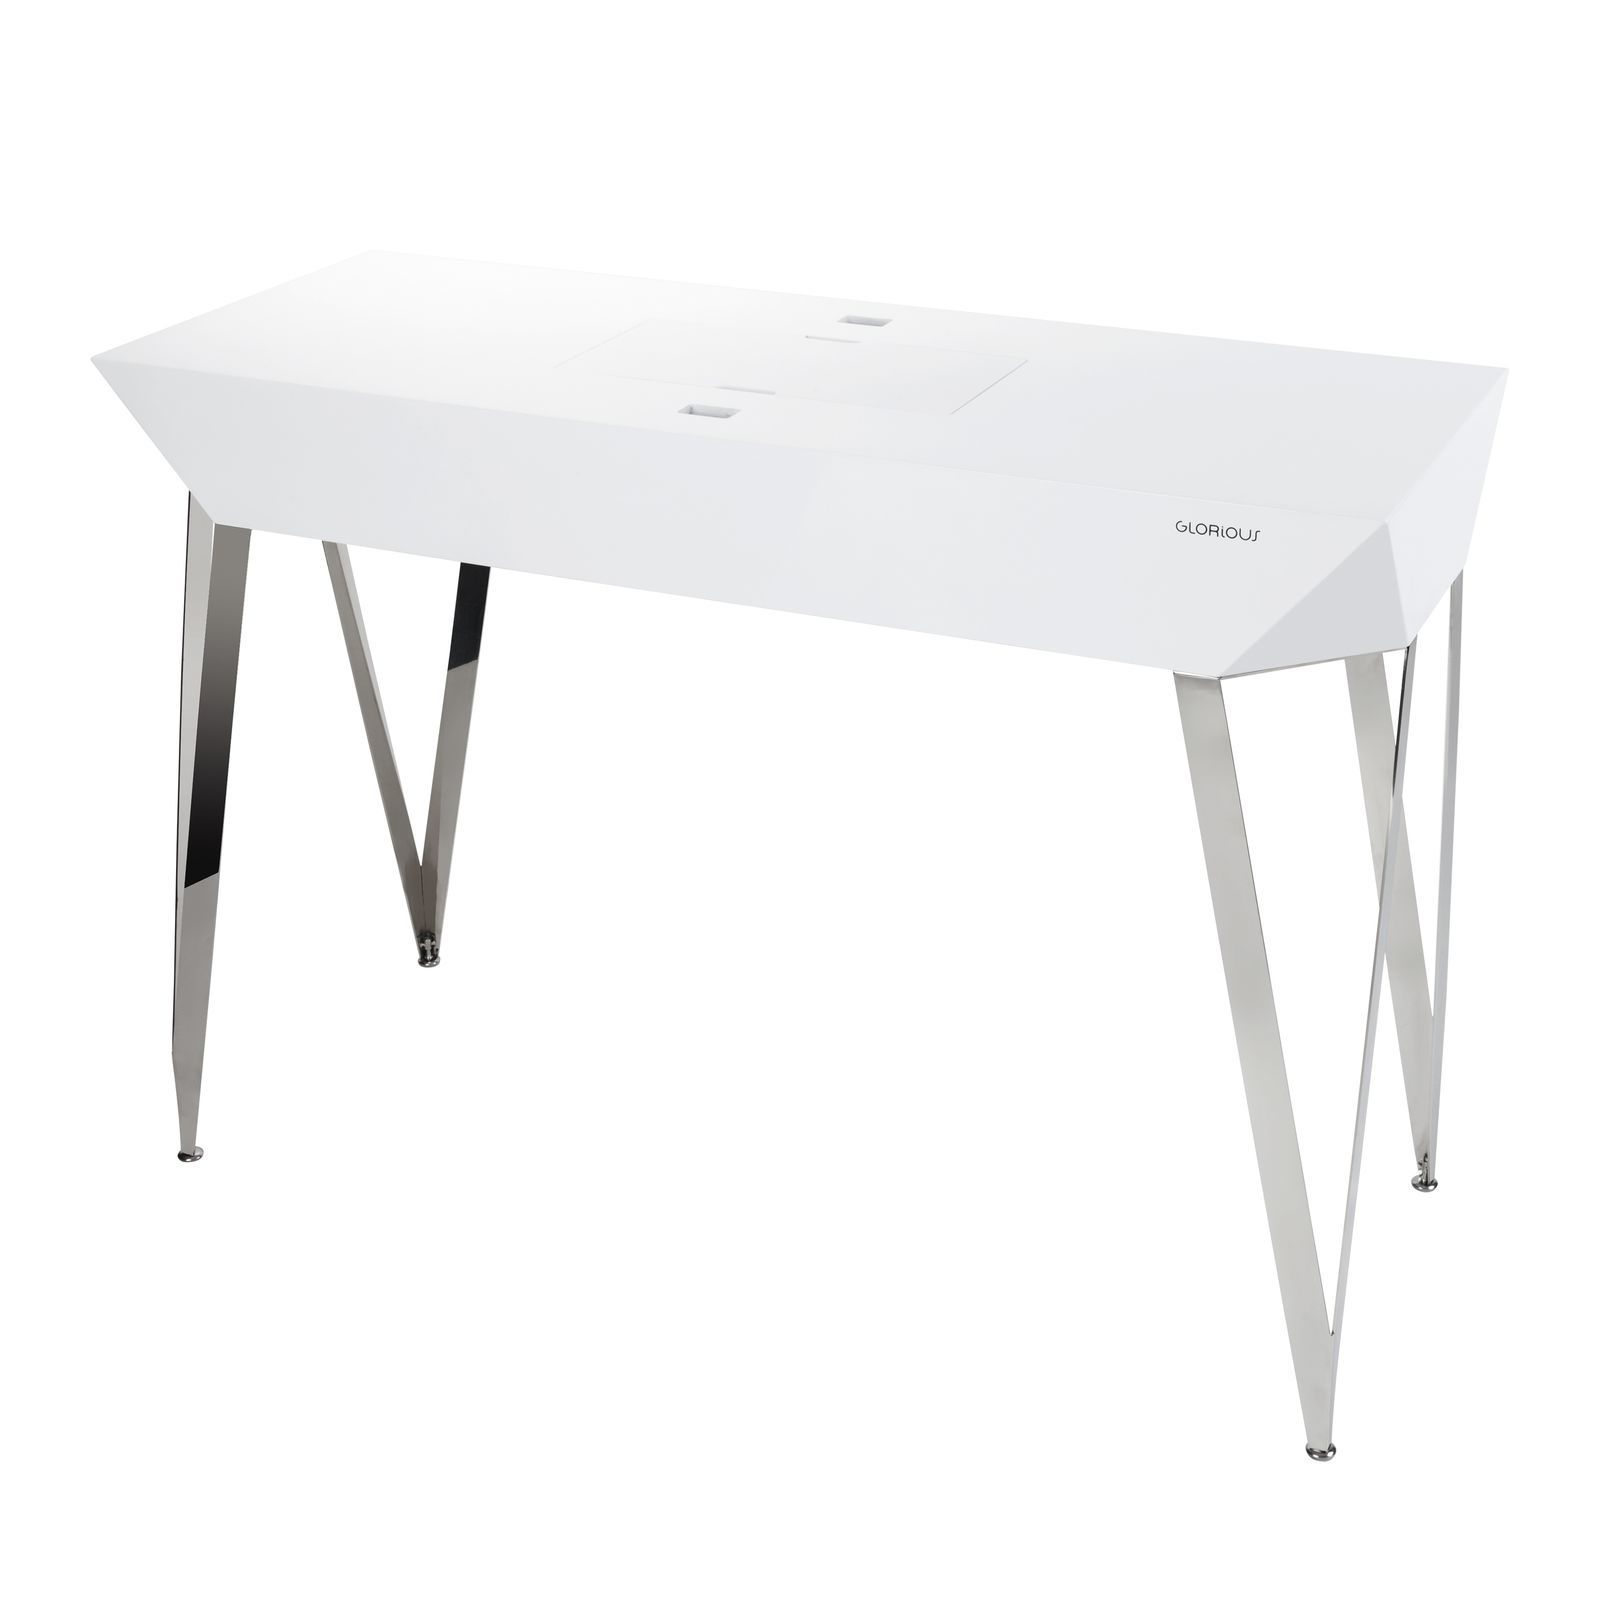 Glorious Glorious Diamond wit DJ-Table 125 x 90 x 48 cm Productafbeelding